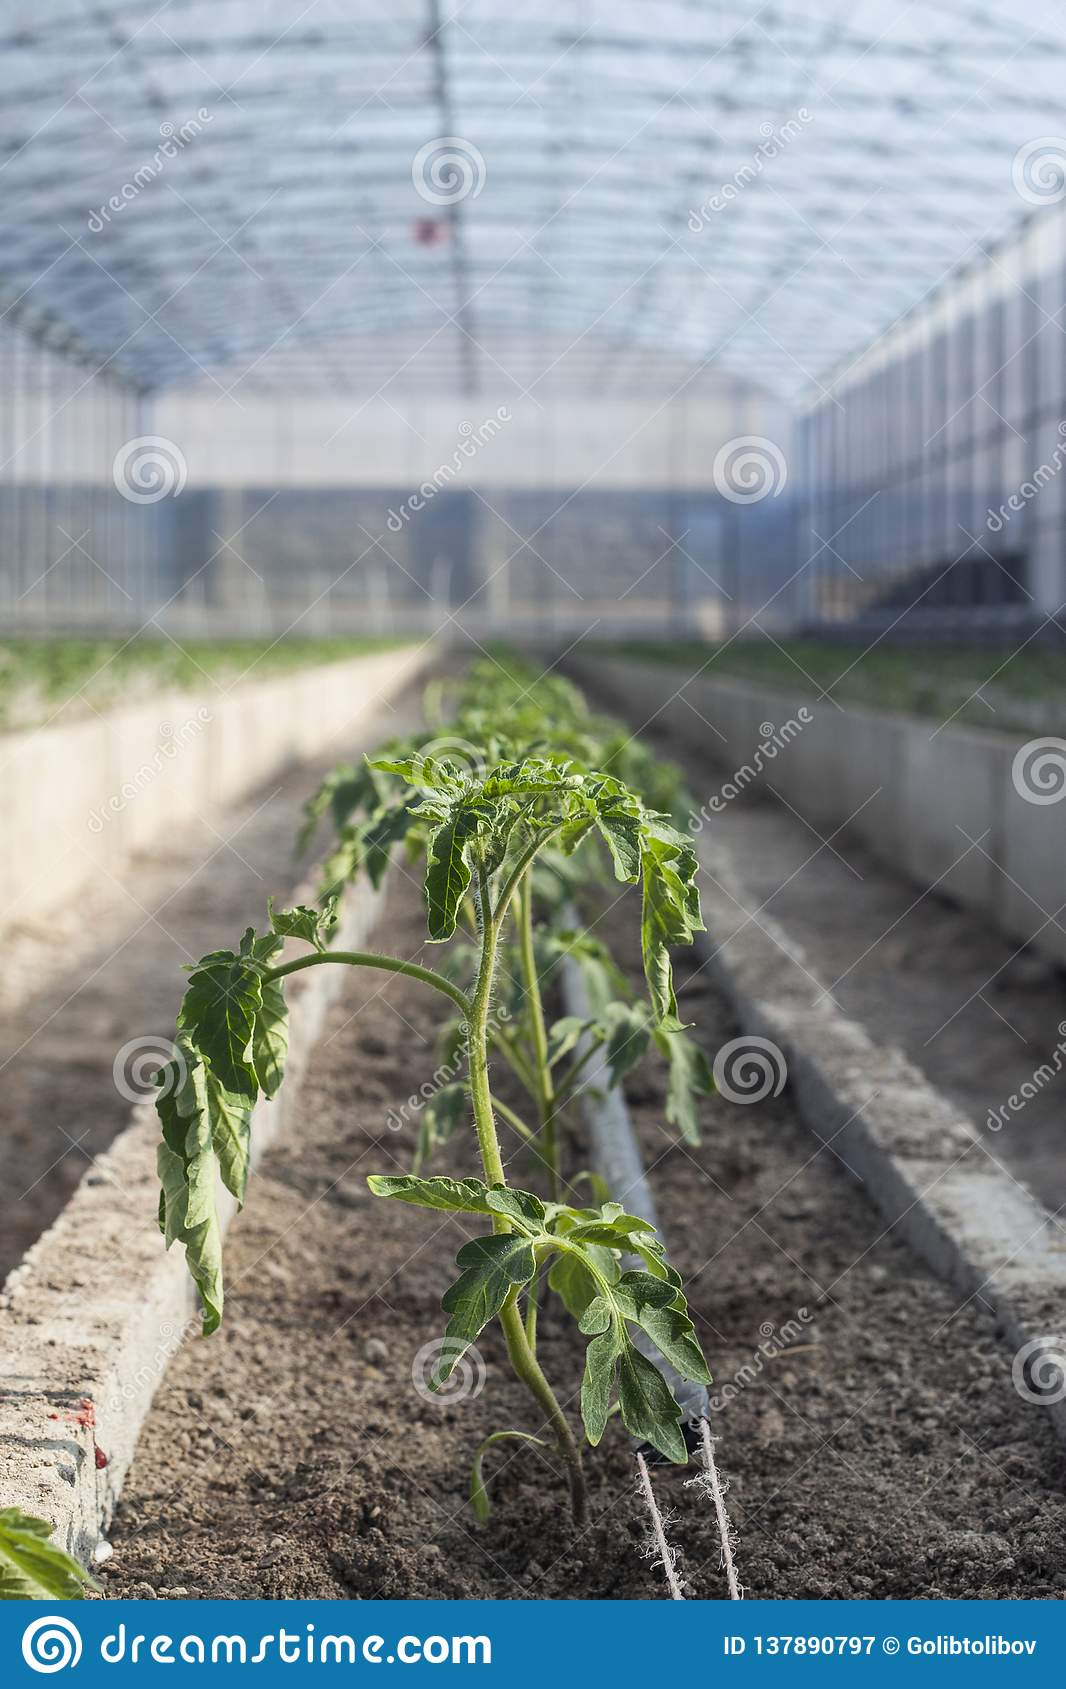 Rows Of Young Tomato Plants In A Greenhouse Stock Image